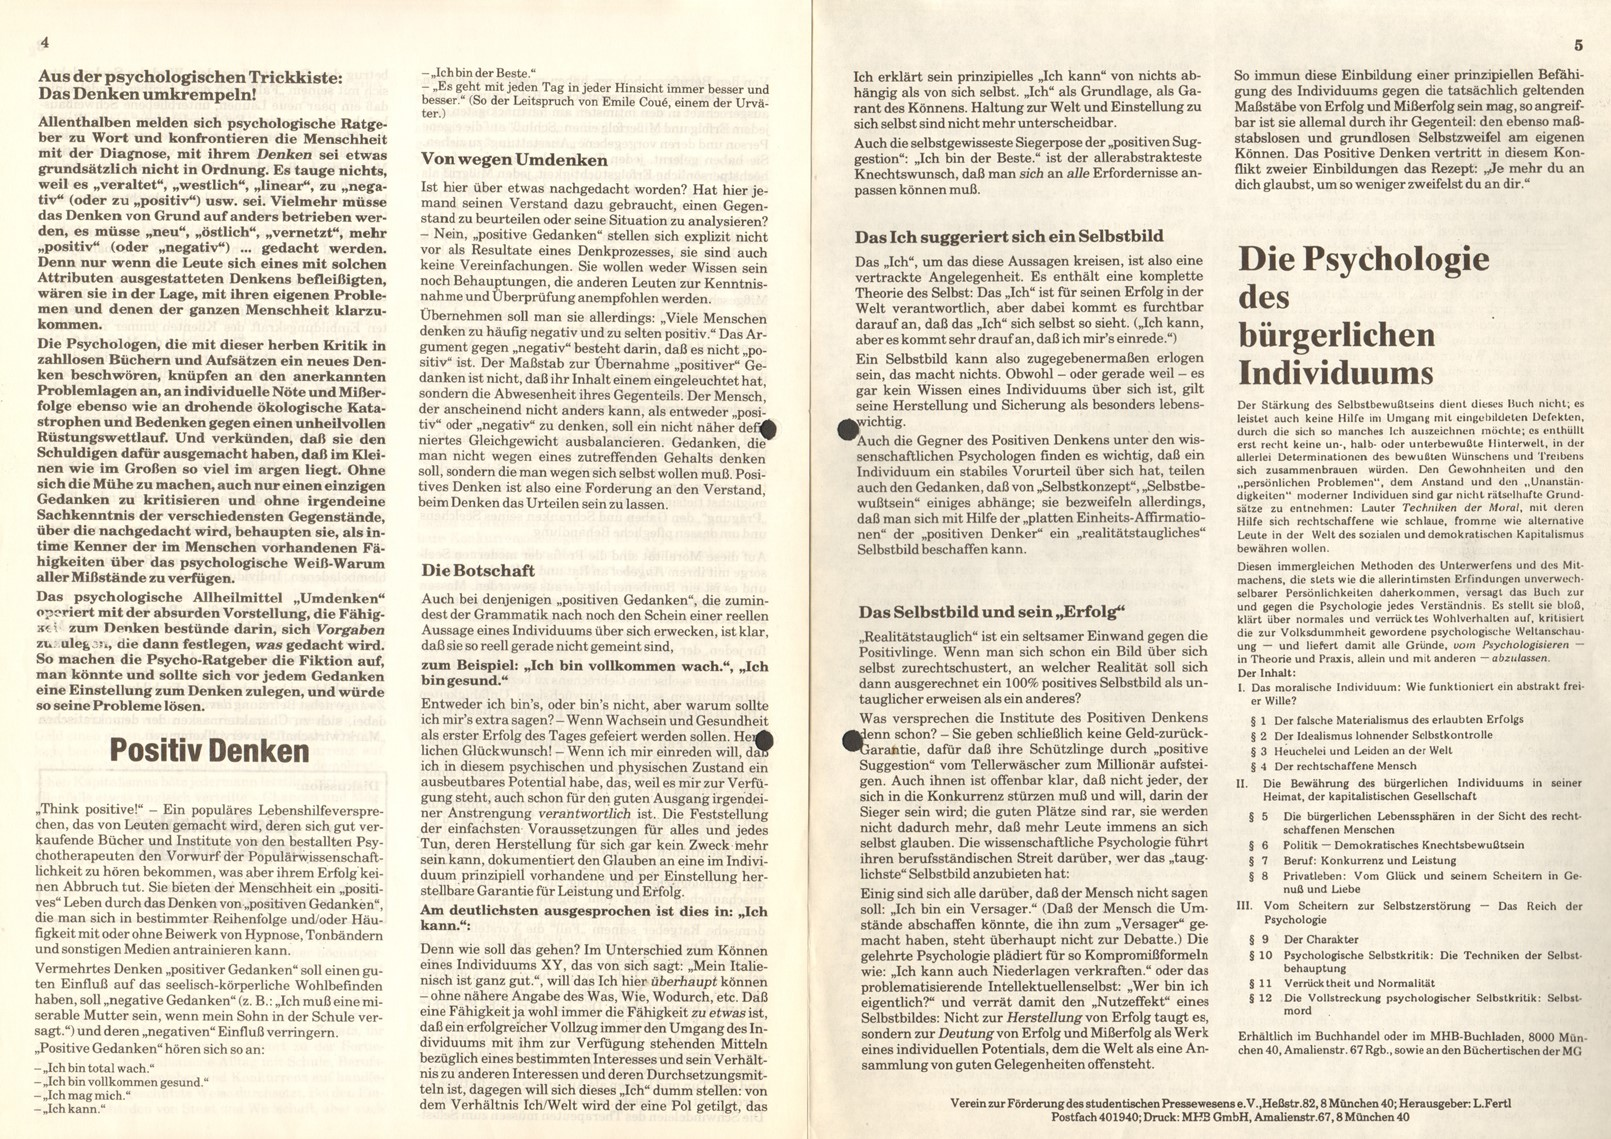 Muenchen_MG_FB_Psychologie_19890200_03